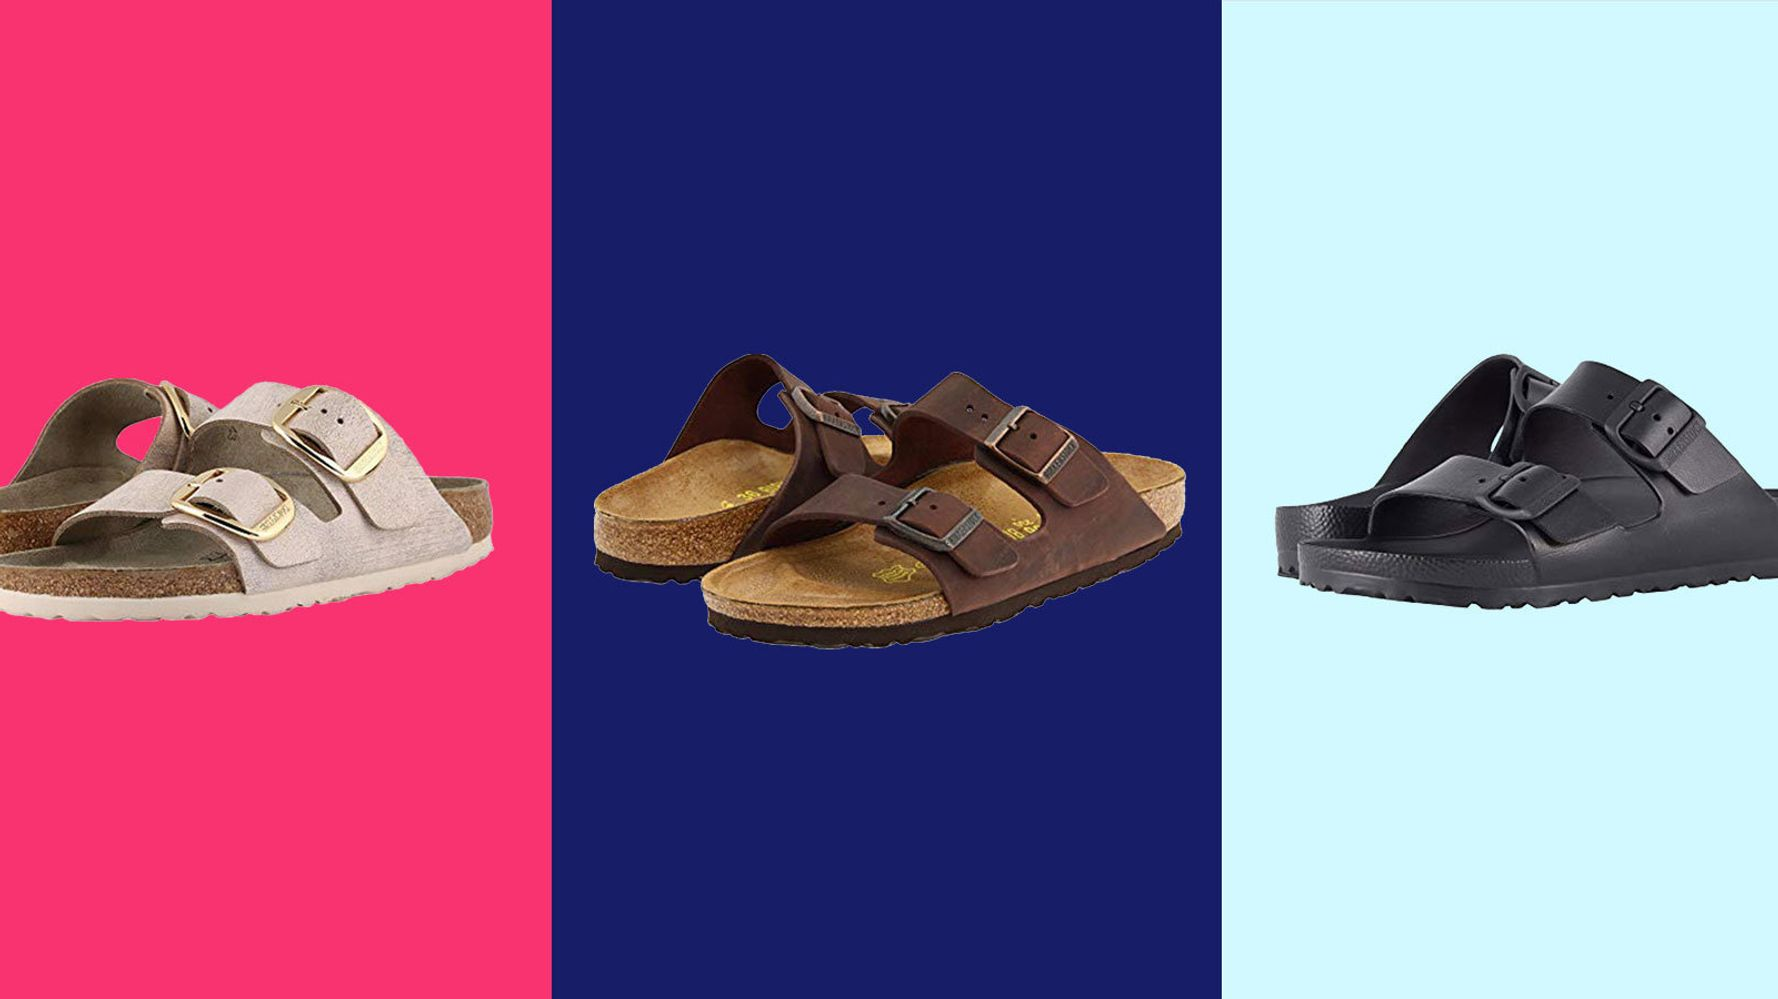 The Need Selling Best To Polarizing Zappos' Sandal We Is Shoe ARjScL354q